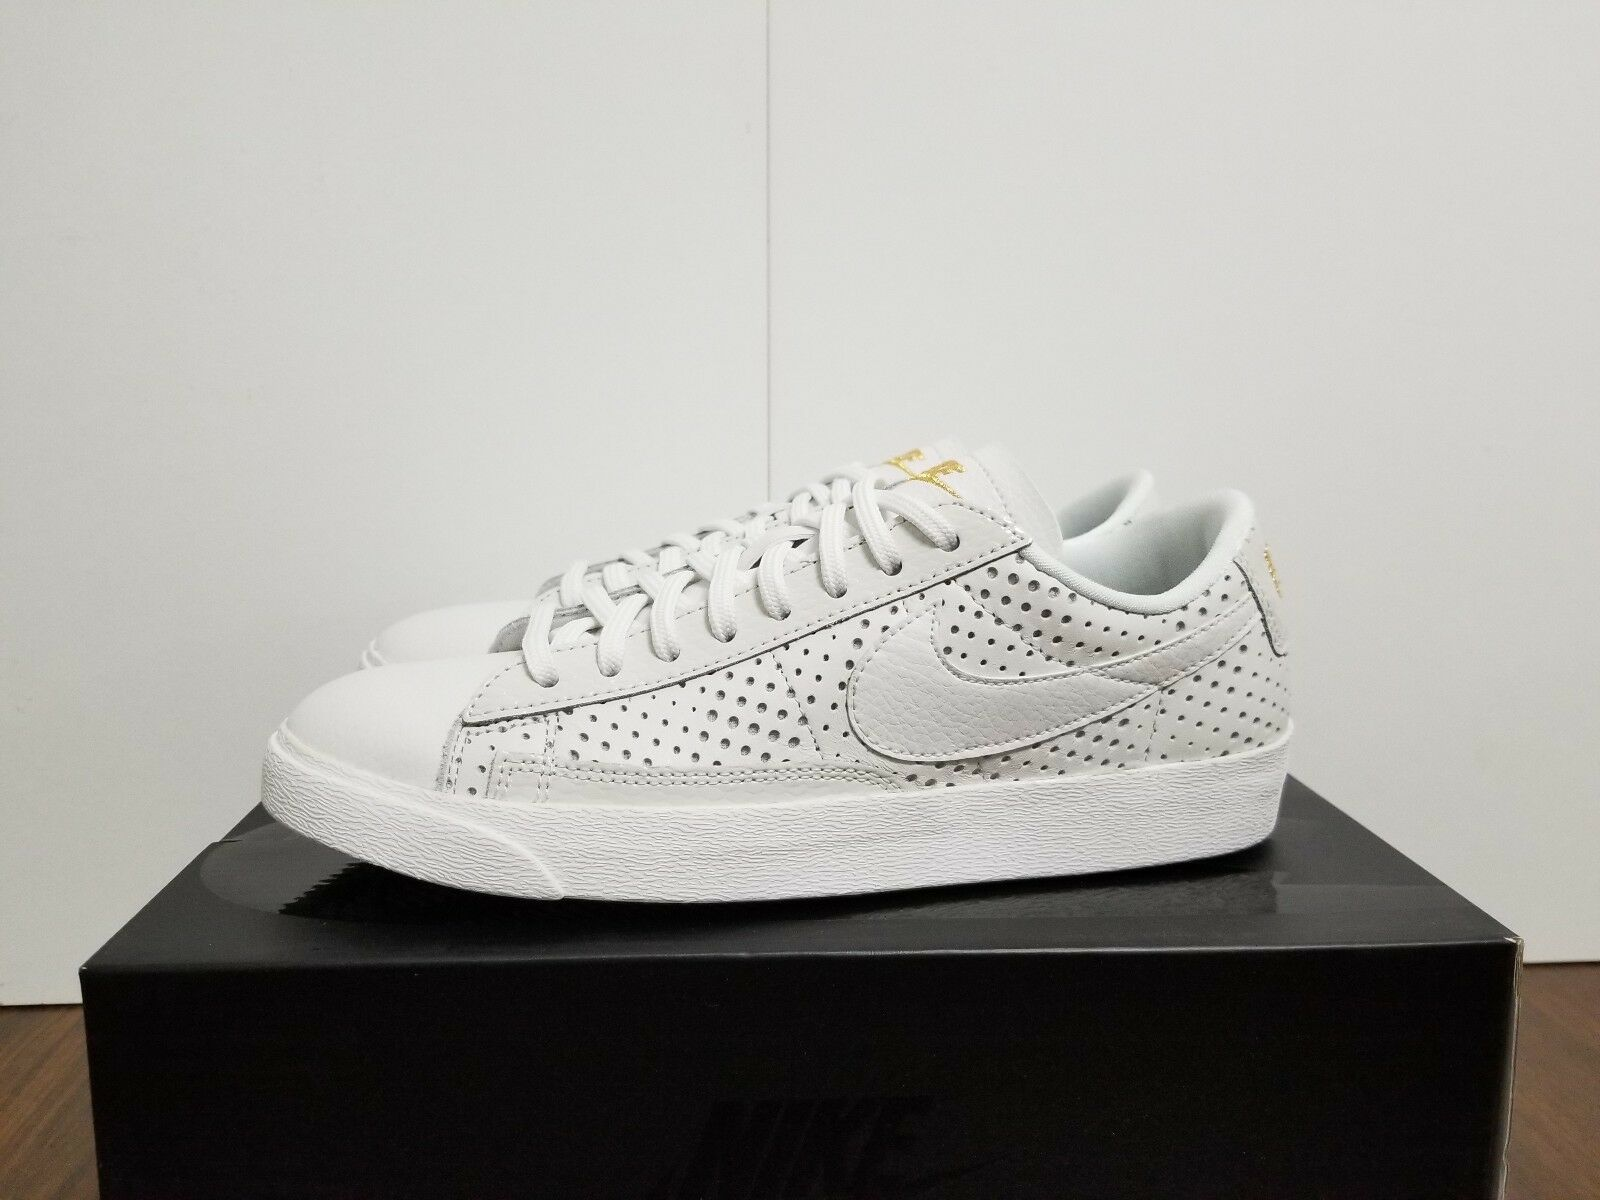 WMNS BLAZER LOW SE PRM SUMMIT WHITE/SUMMIT WHITE  AA1557 100 Seasonal clearance sale